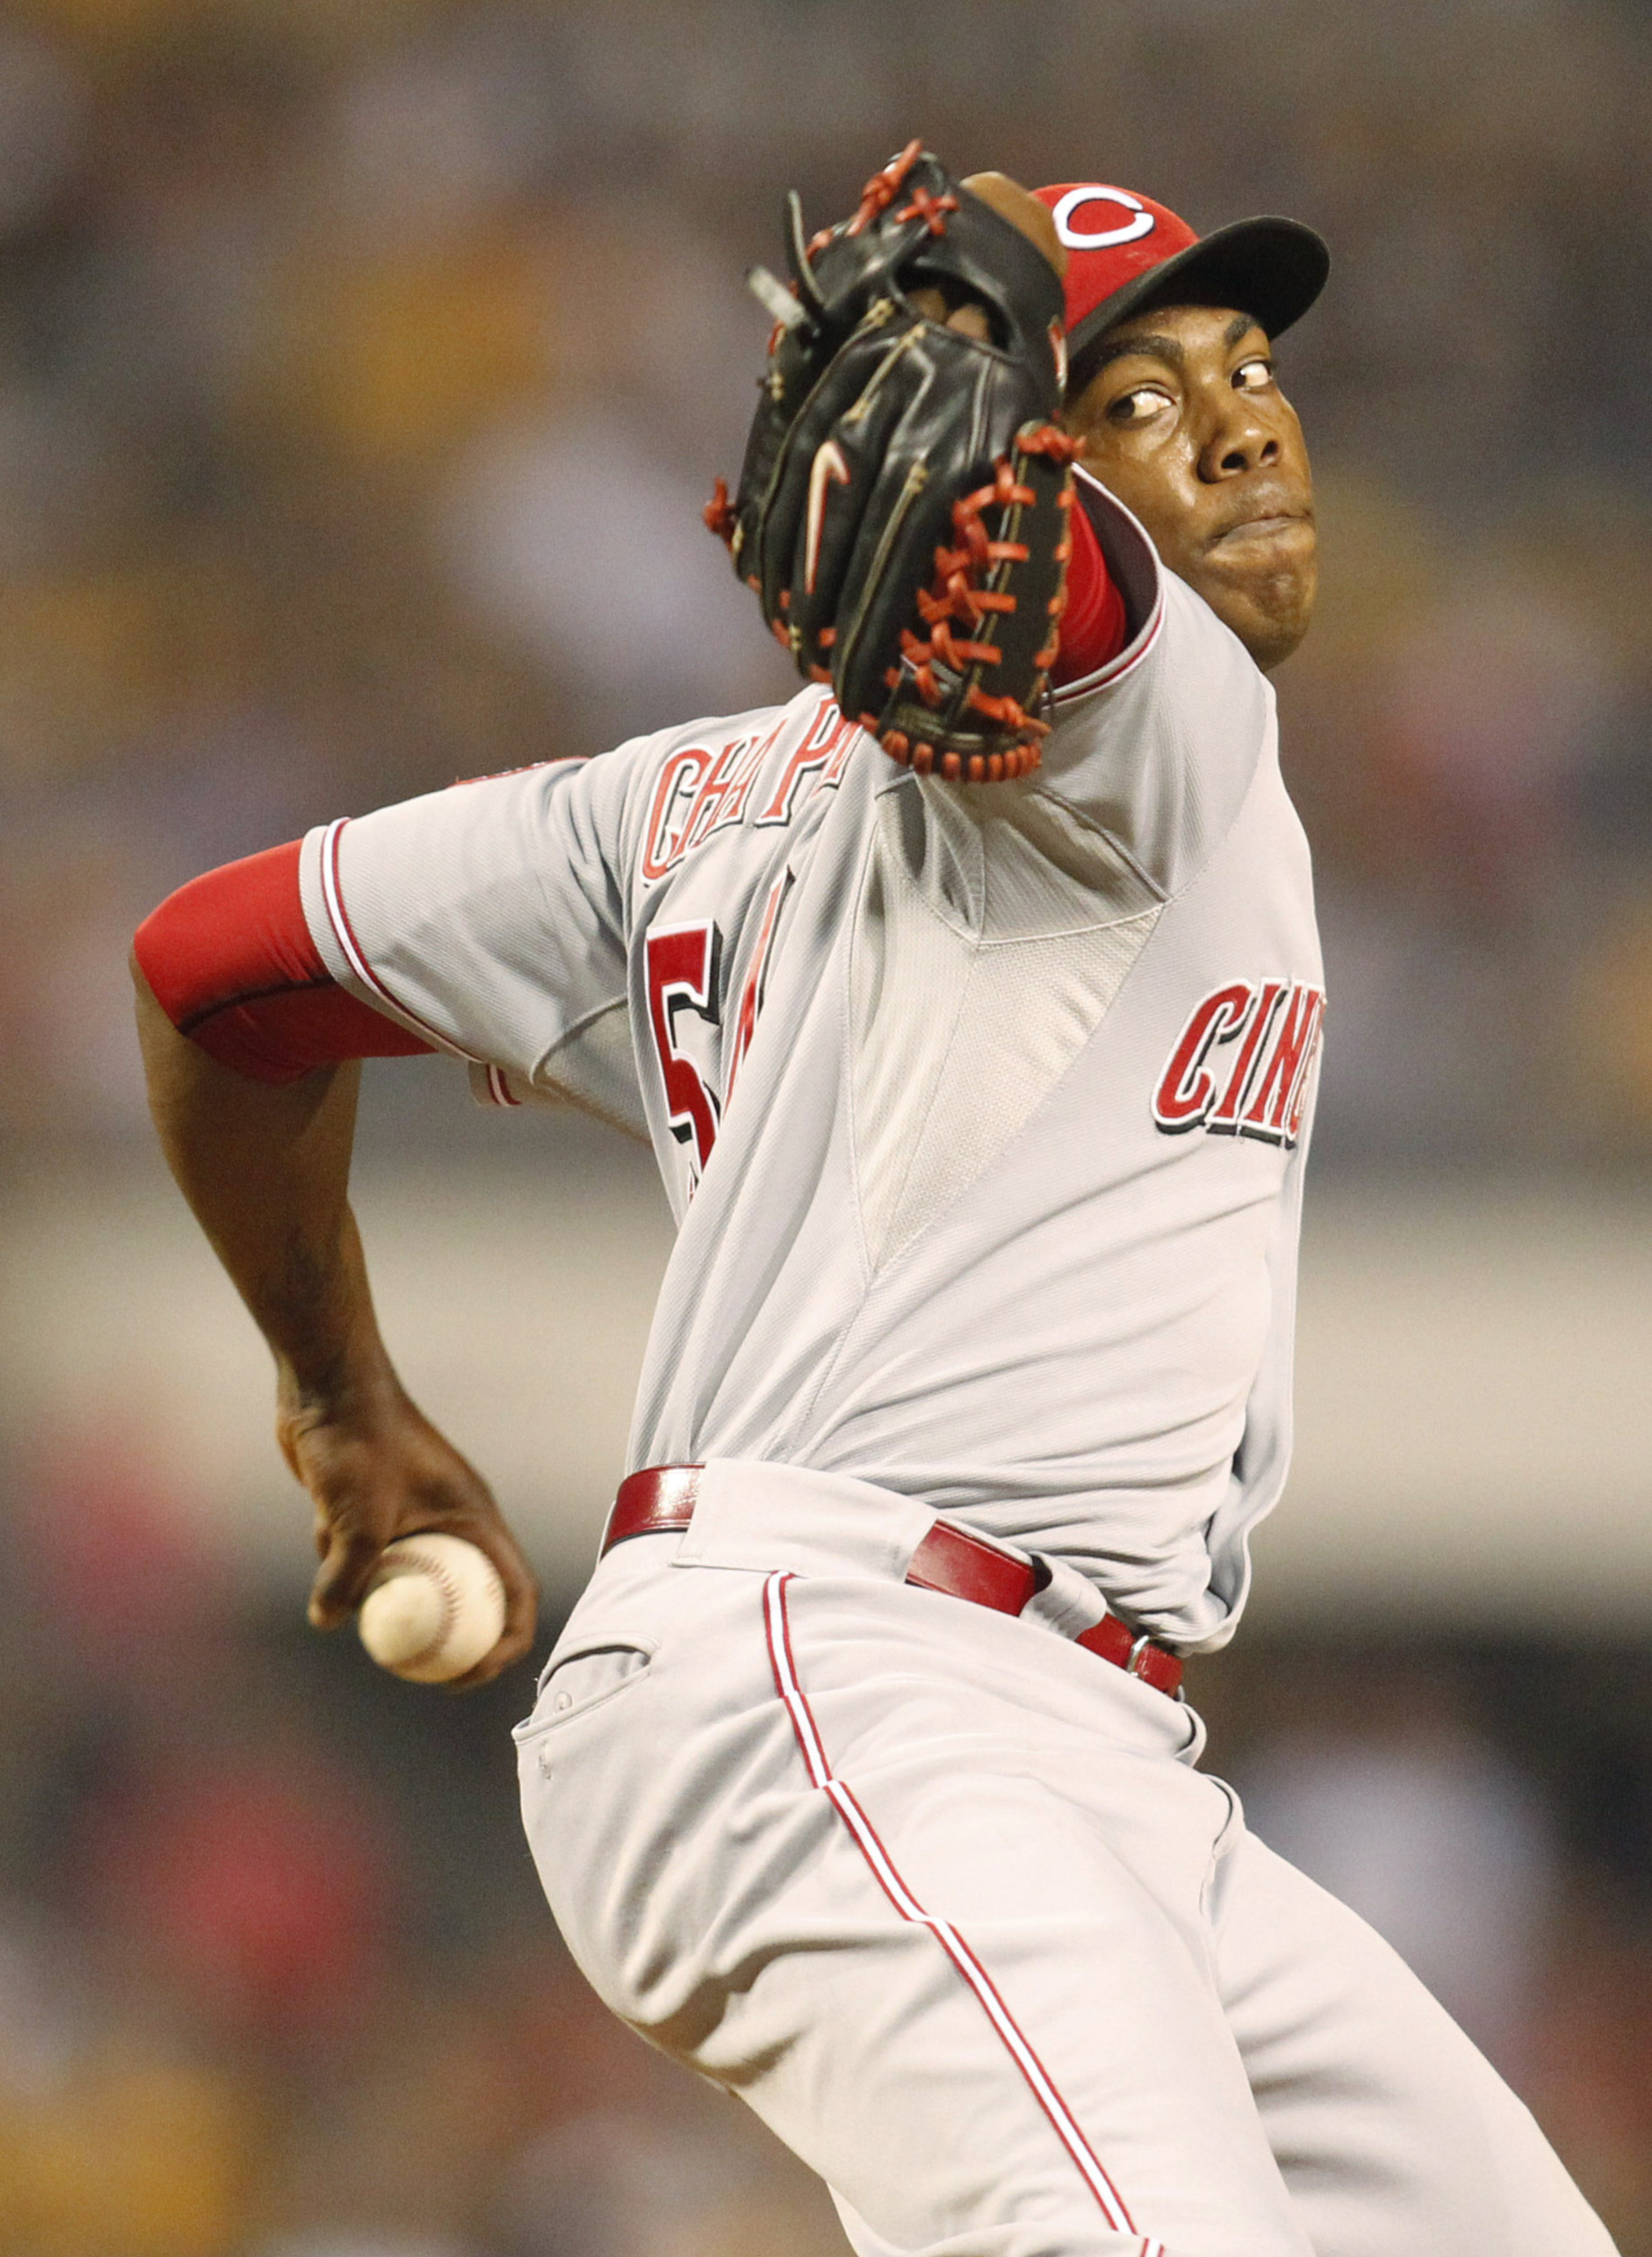 Aroldis Chapman says he will not start for the Reds